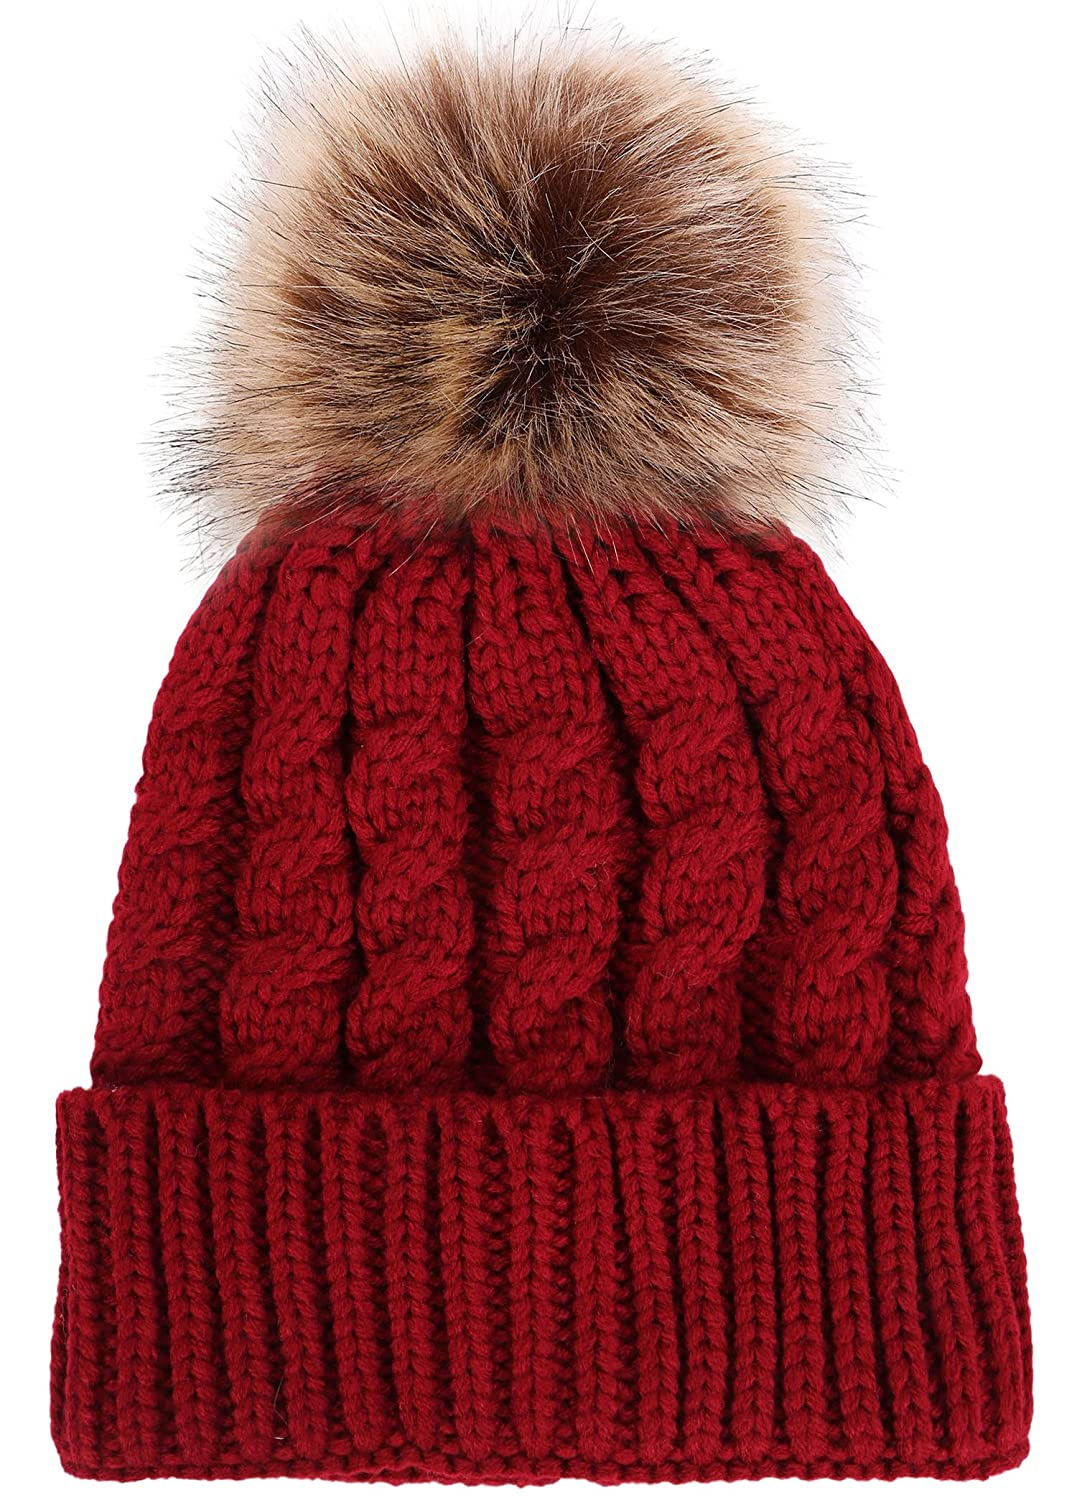 15afd8463 Livingston Women's Winter Soft Knitted Beanie Hat With Faux Fur Pom ...